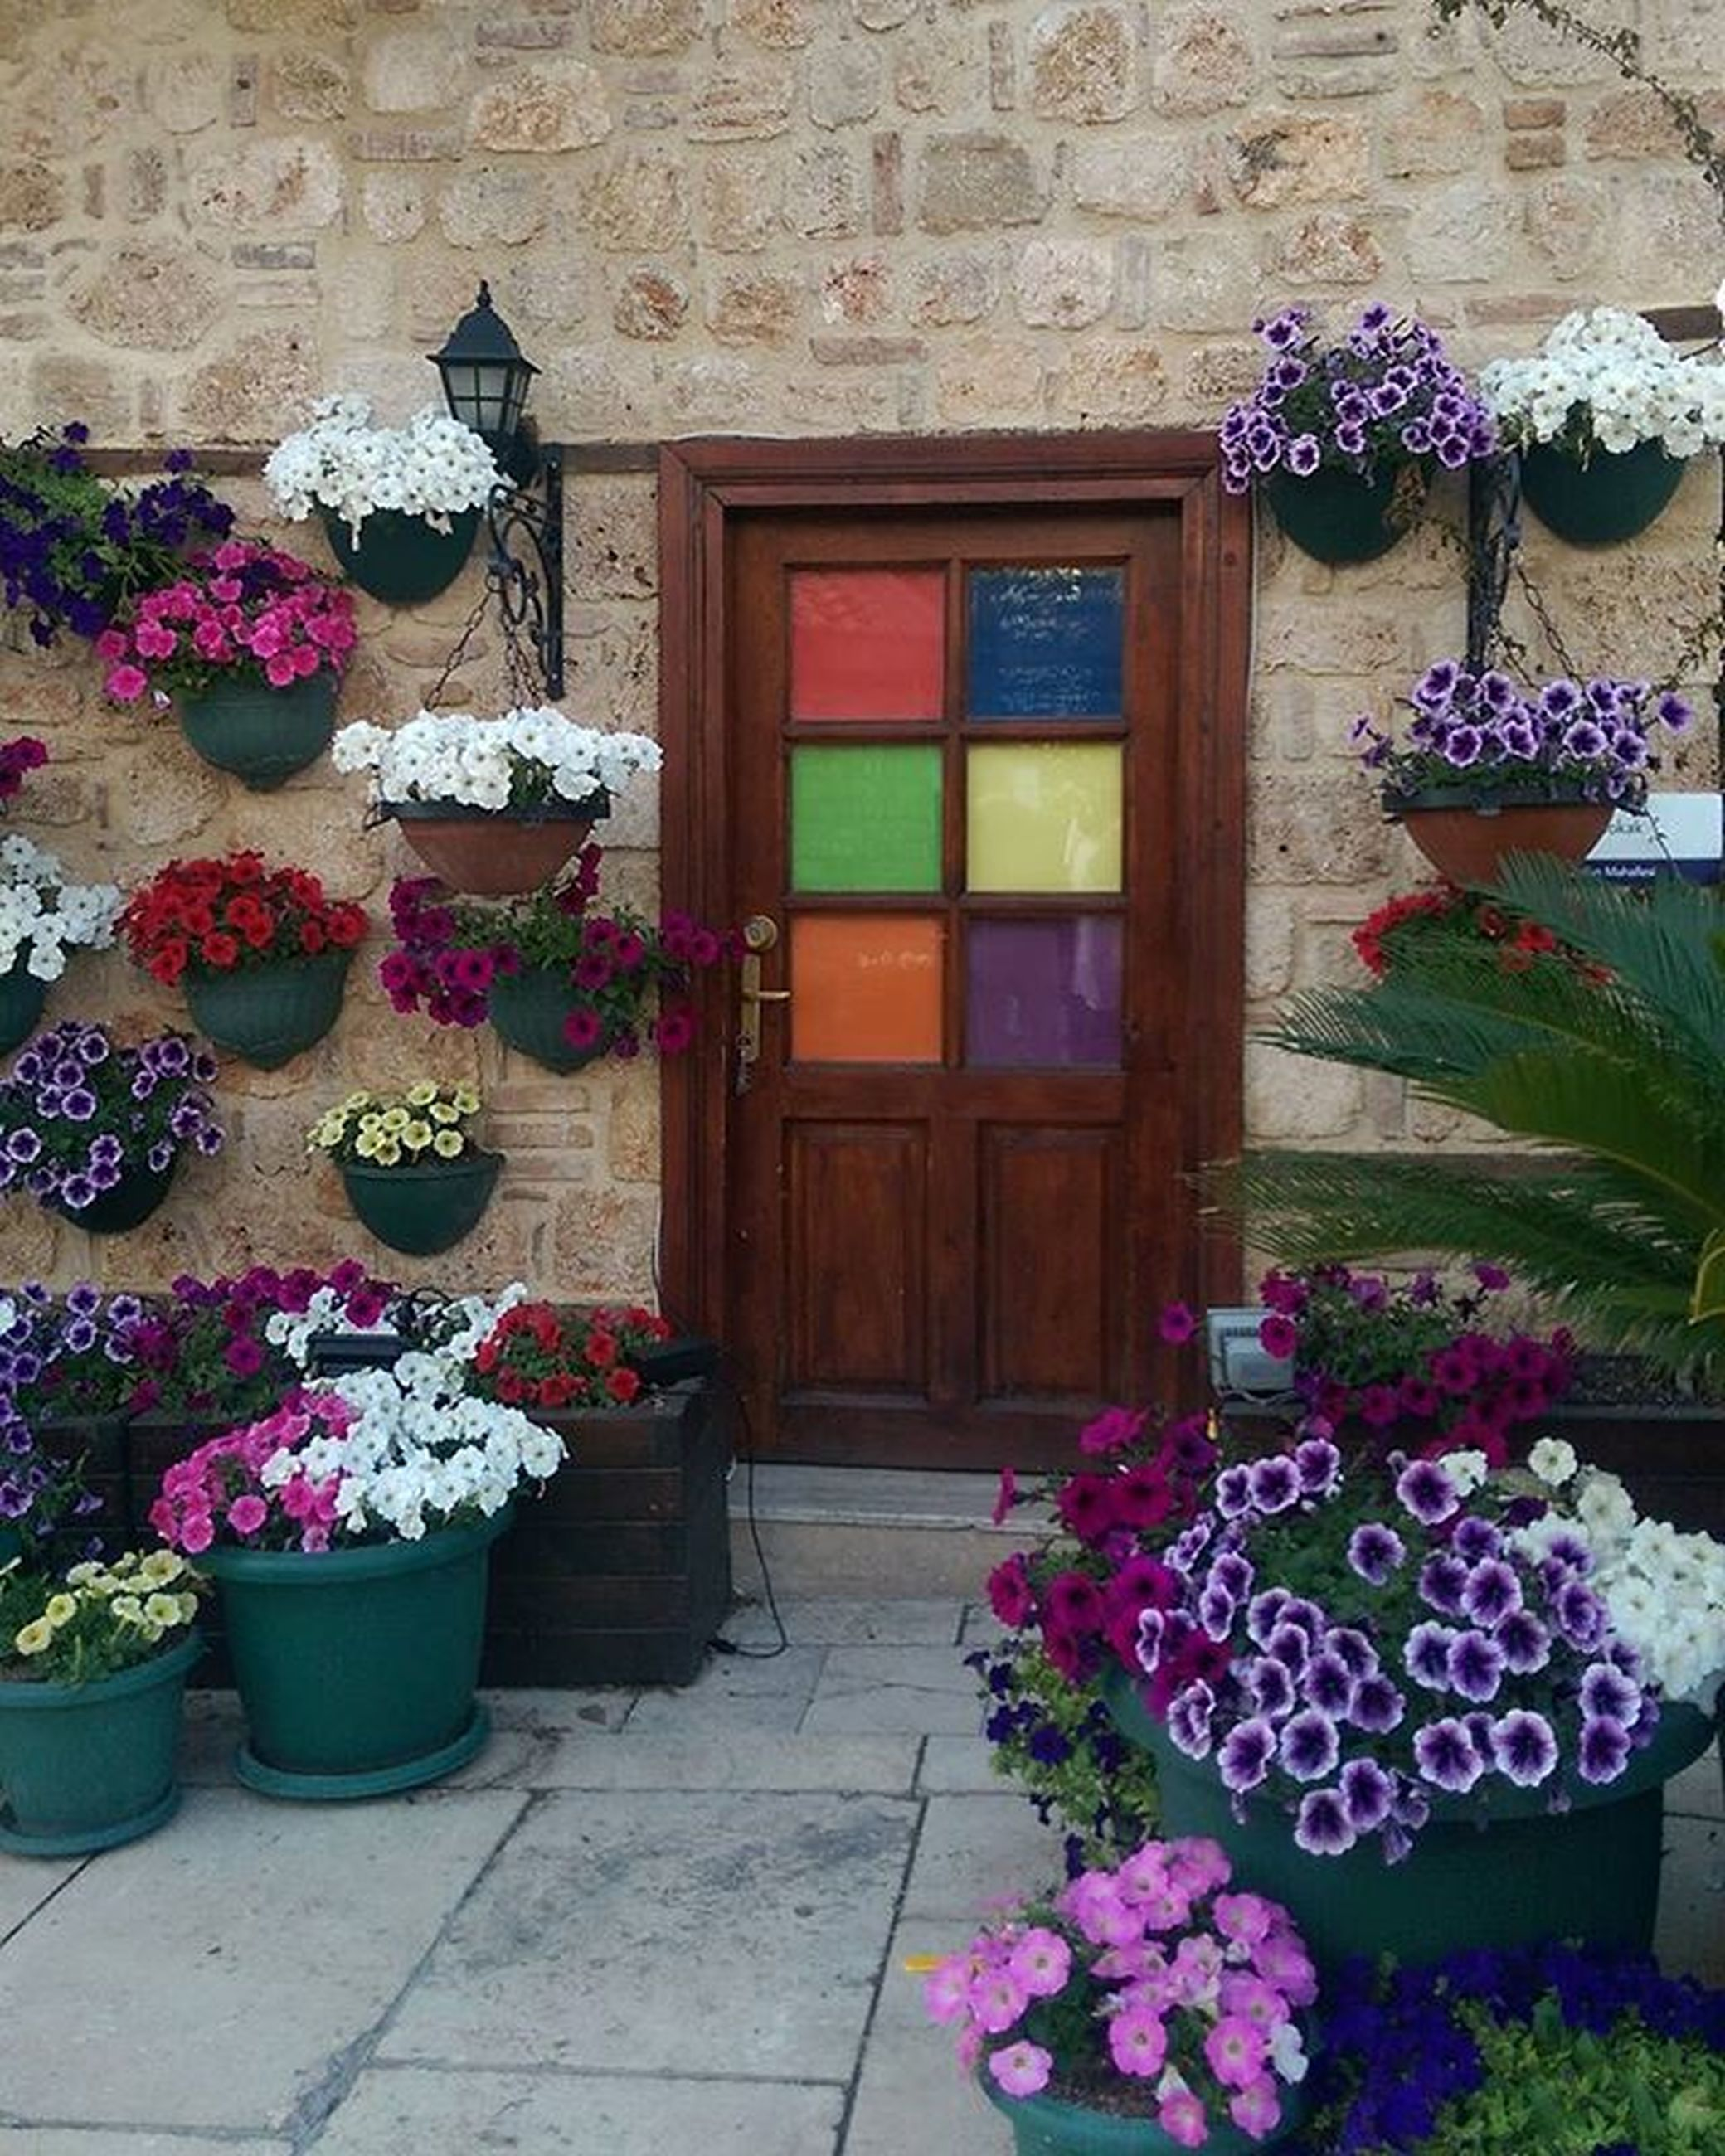 flower, potted plant, built structure, architecture, plant, building exterior, window, door, house, flower pot, decoration, multi colored, freshness, entrance, fragility, growth, no people, petal, day, wall - building feature